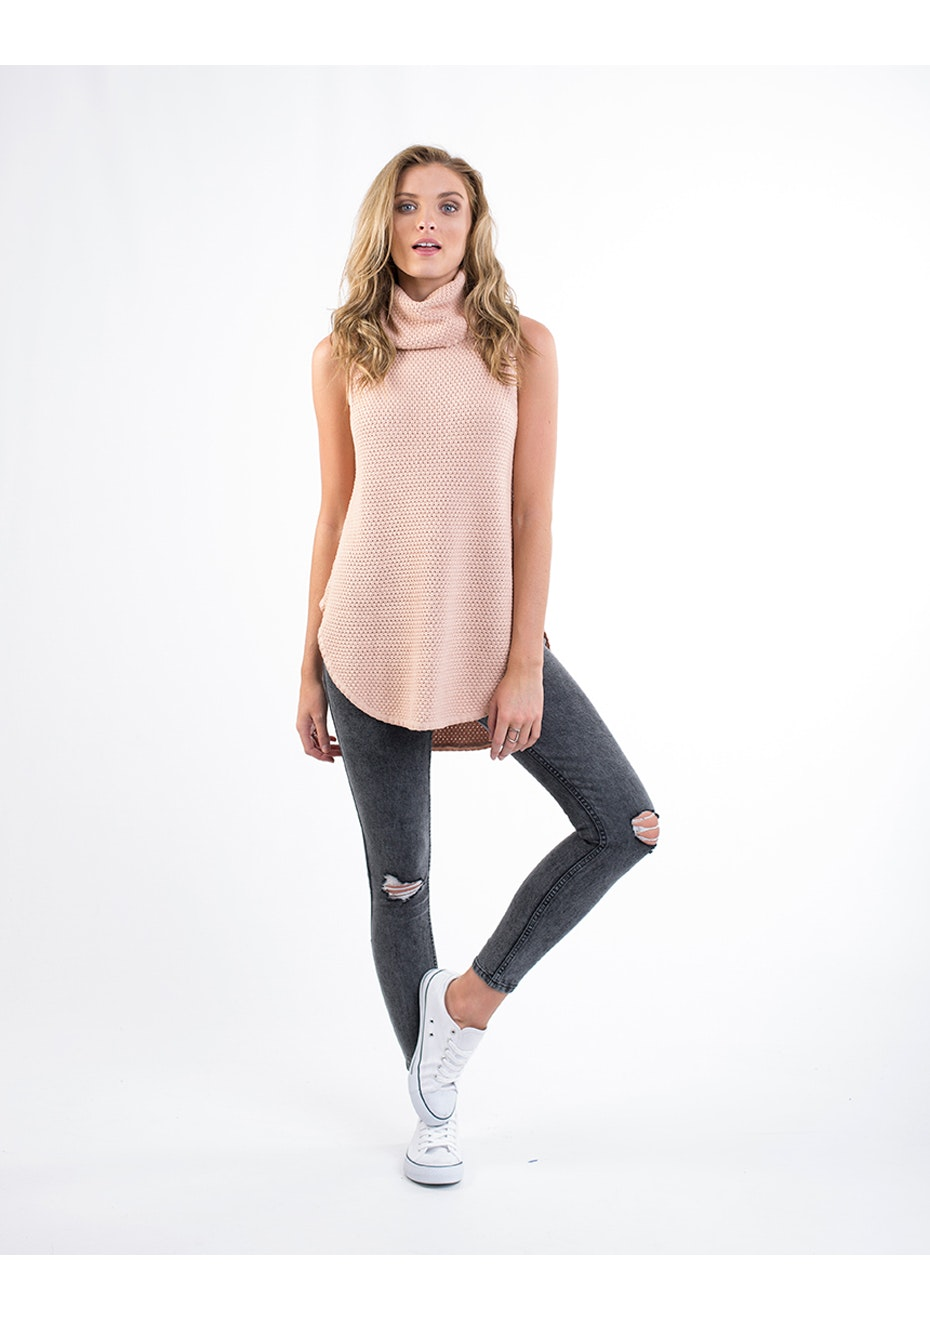 All About Eve - Castro Sleeveless Knit - Blush